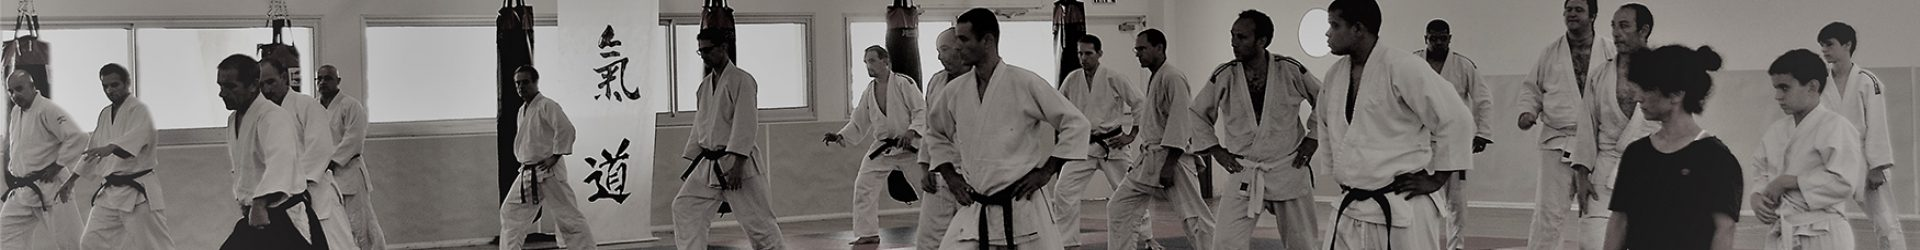 The Intention Behind The Technique – Memories Of Sensei Gadi Shorr From His Times At The Yoshinkan Hombu Dojo